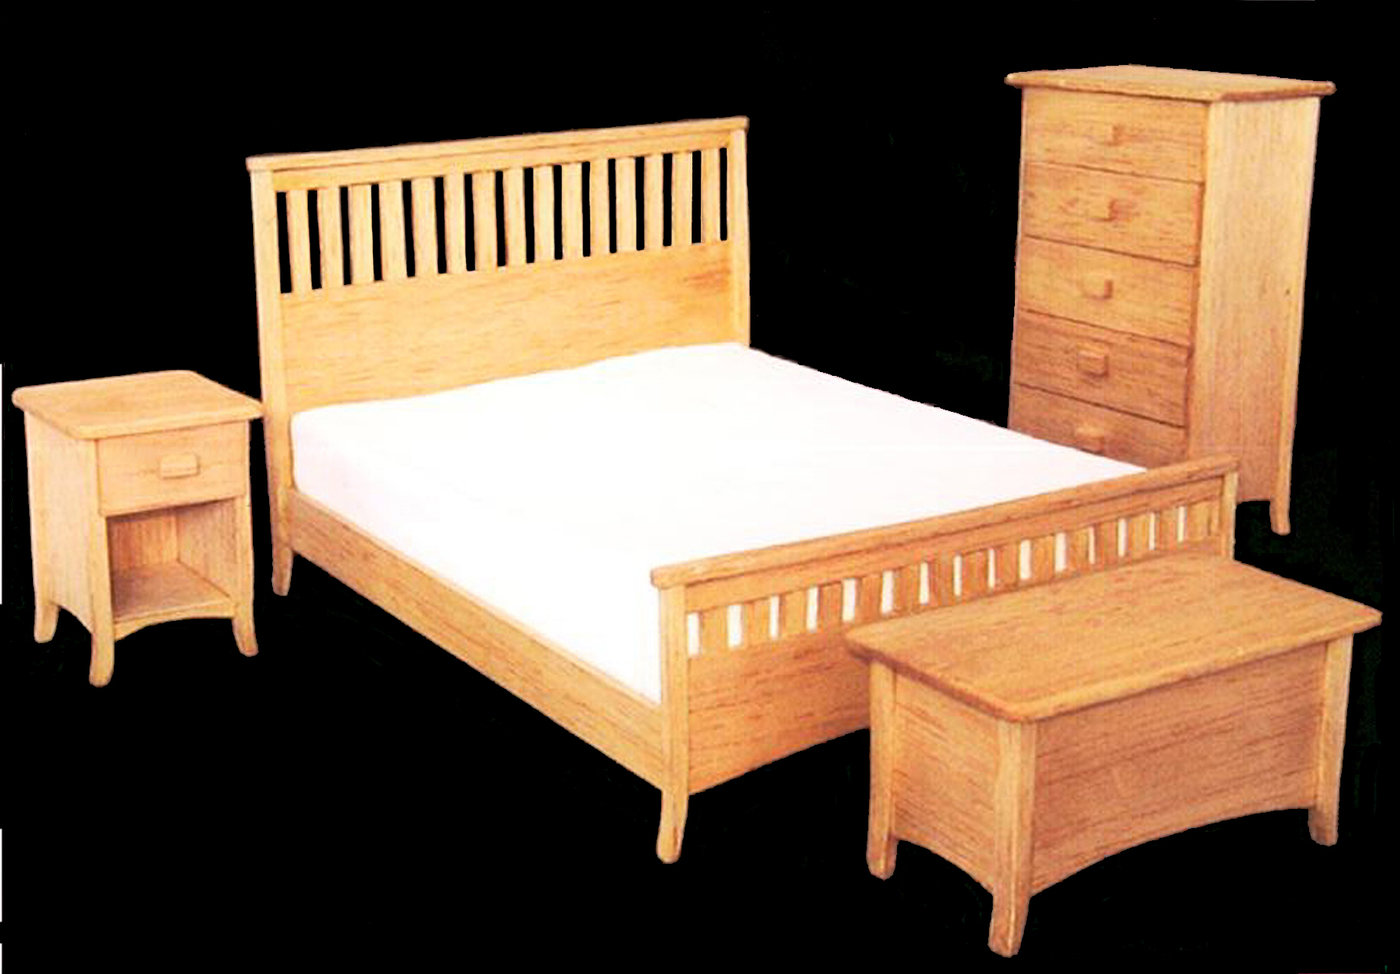 b60a5132c Bedroom collection (1 10 scaled model) - This furniture is a scaled model  made of balsa wood